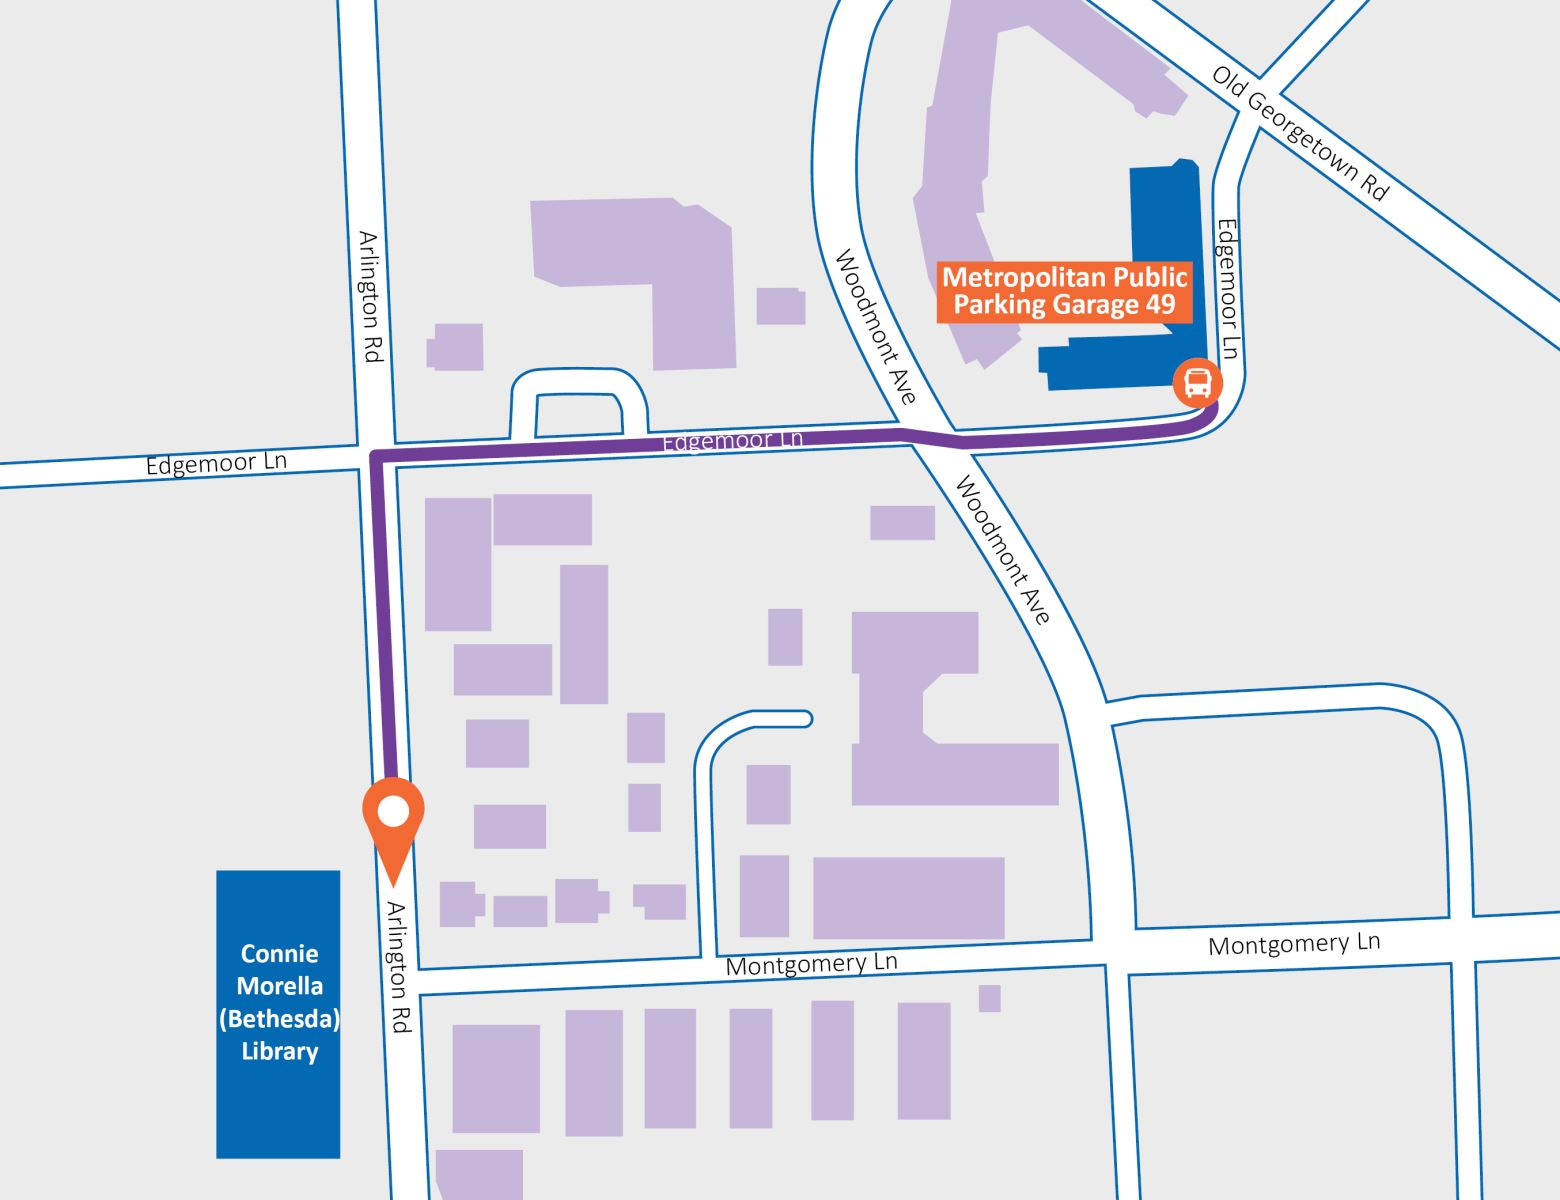 map showing directions between library and garage